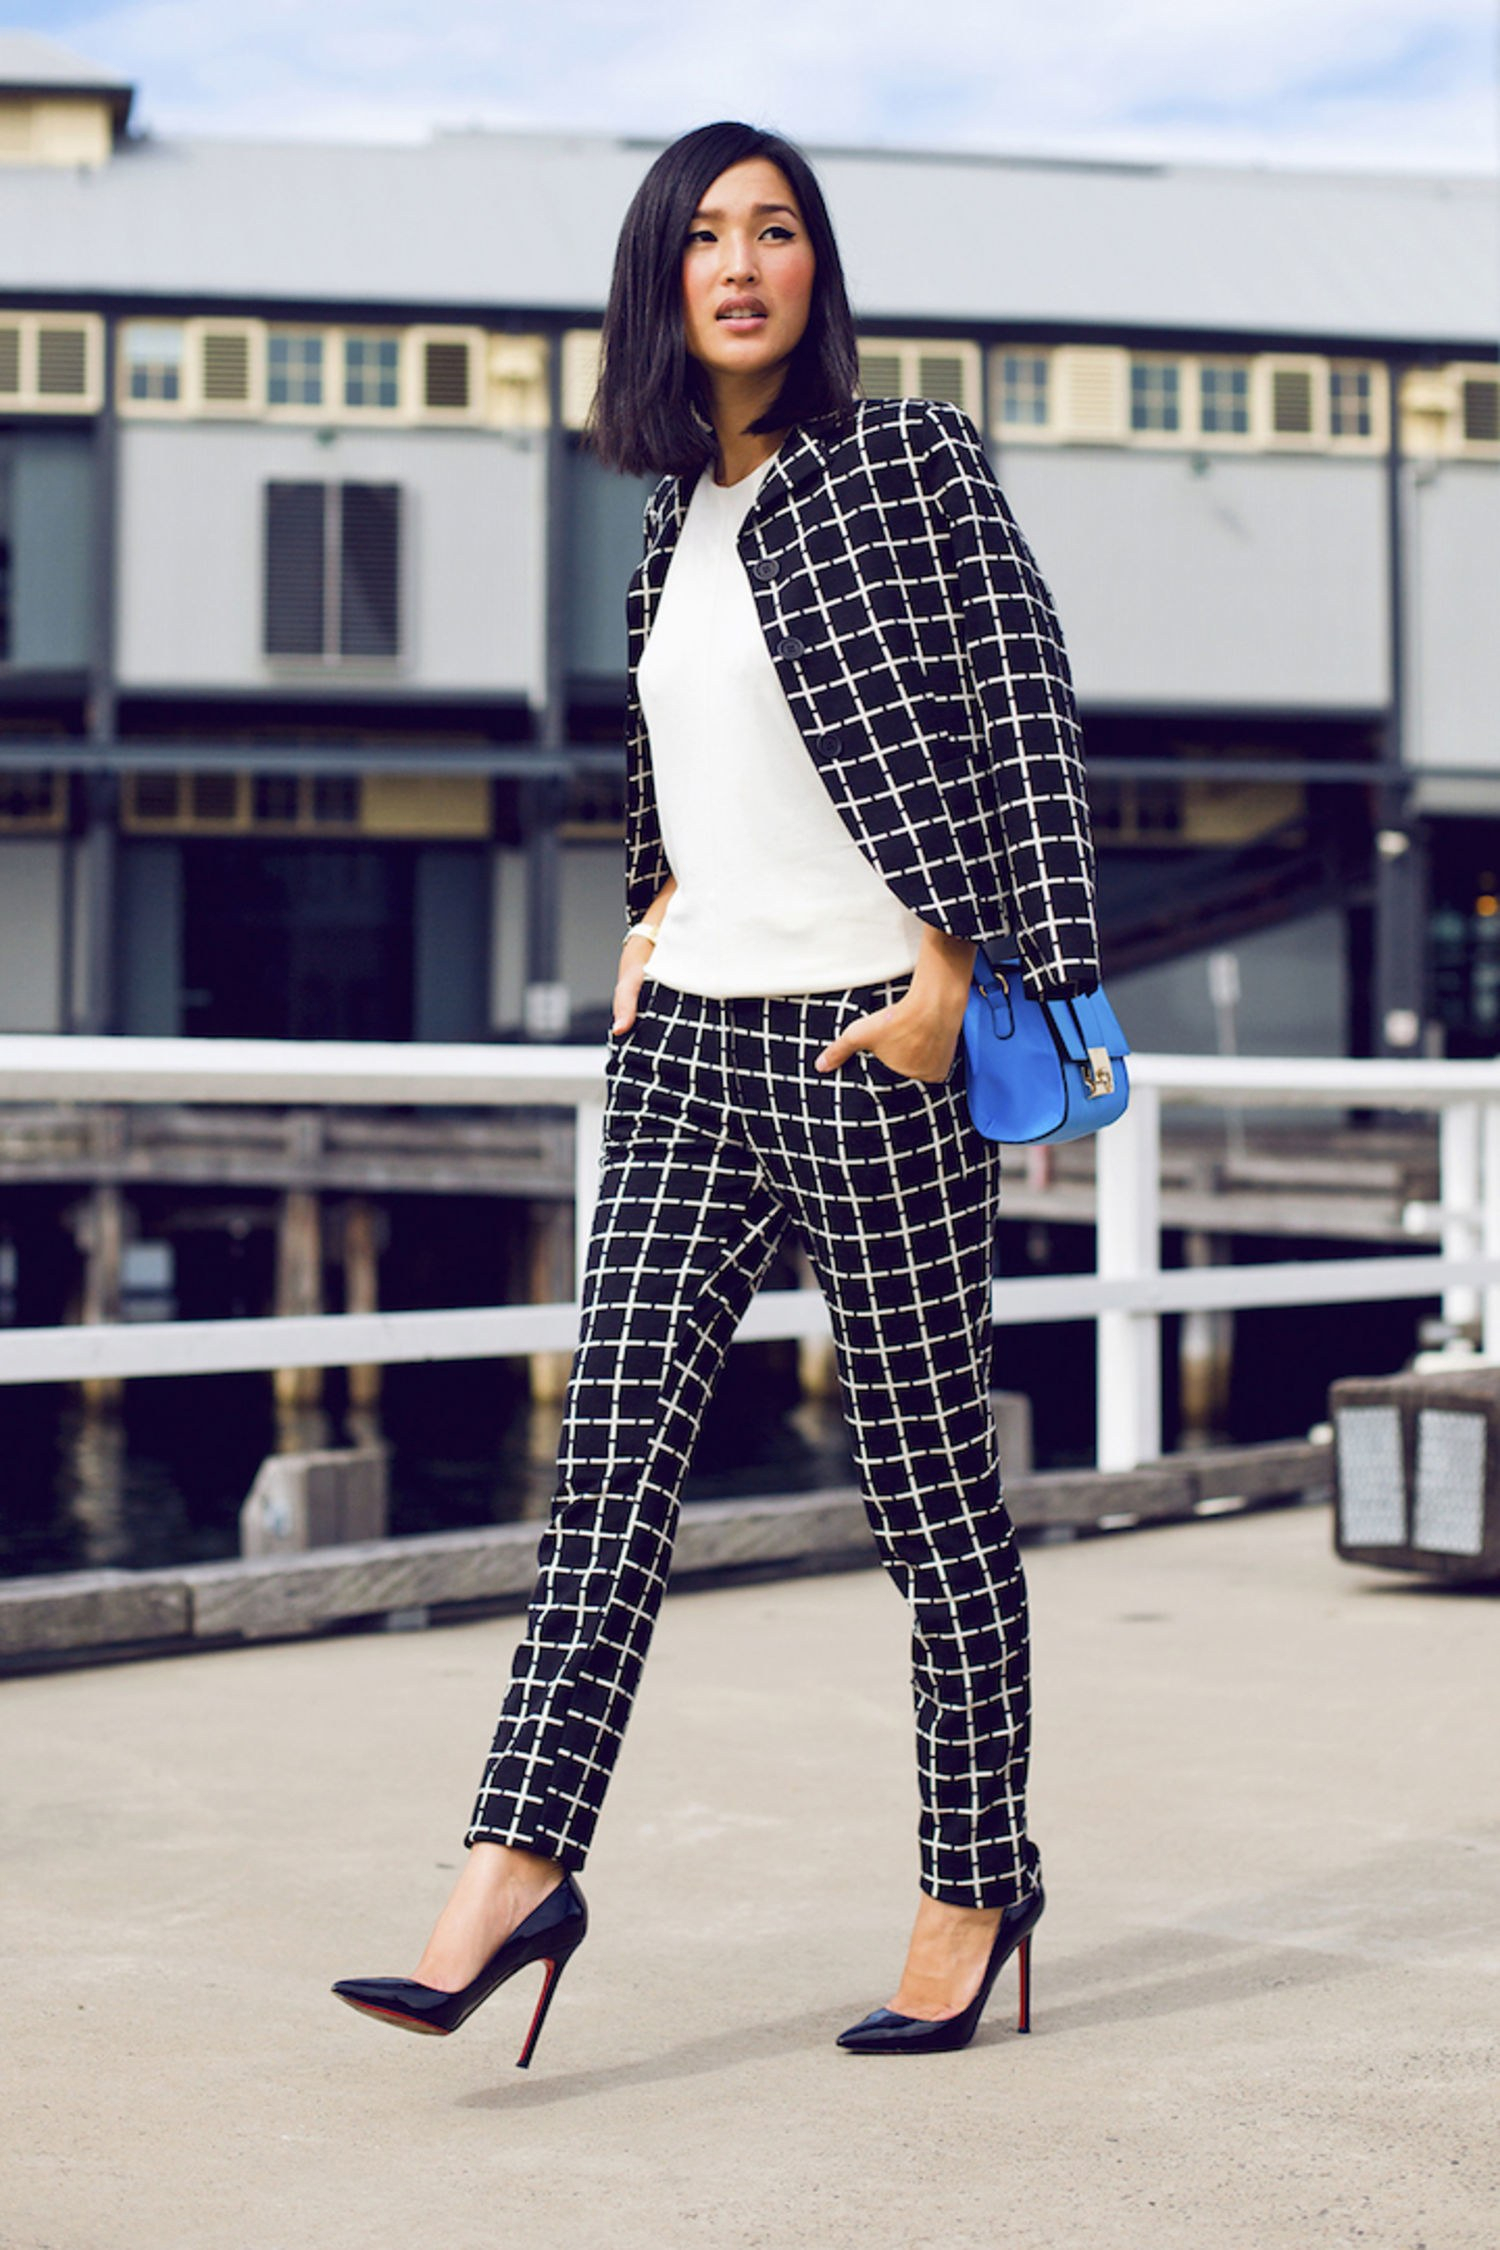 fall outfit ideas: how to wear black and white - glamour